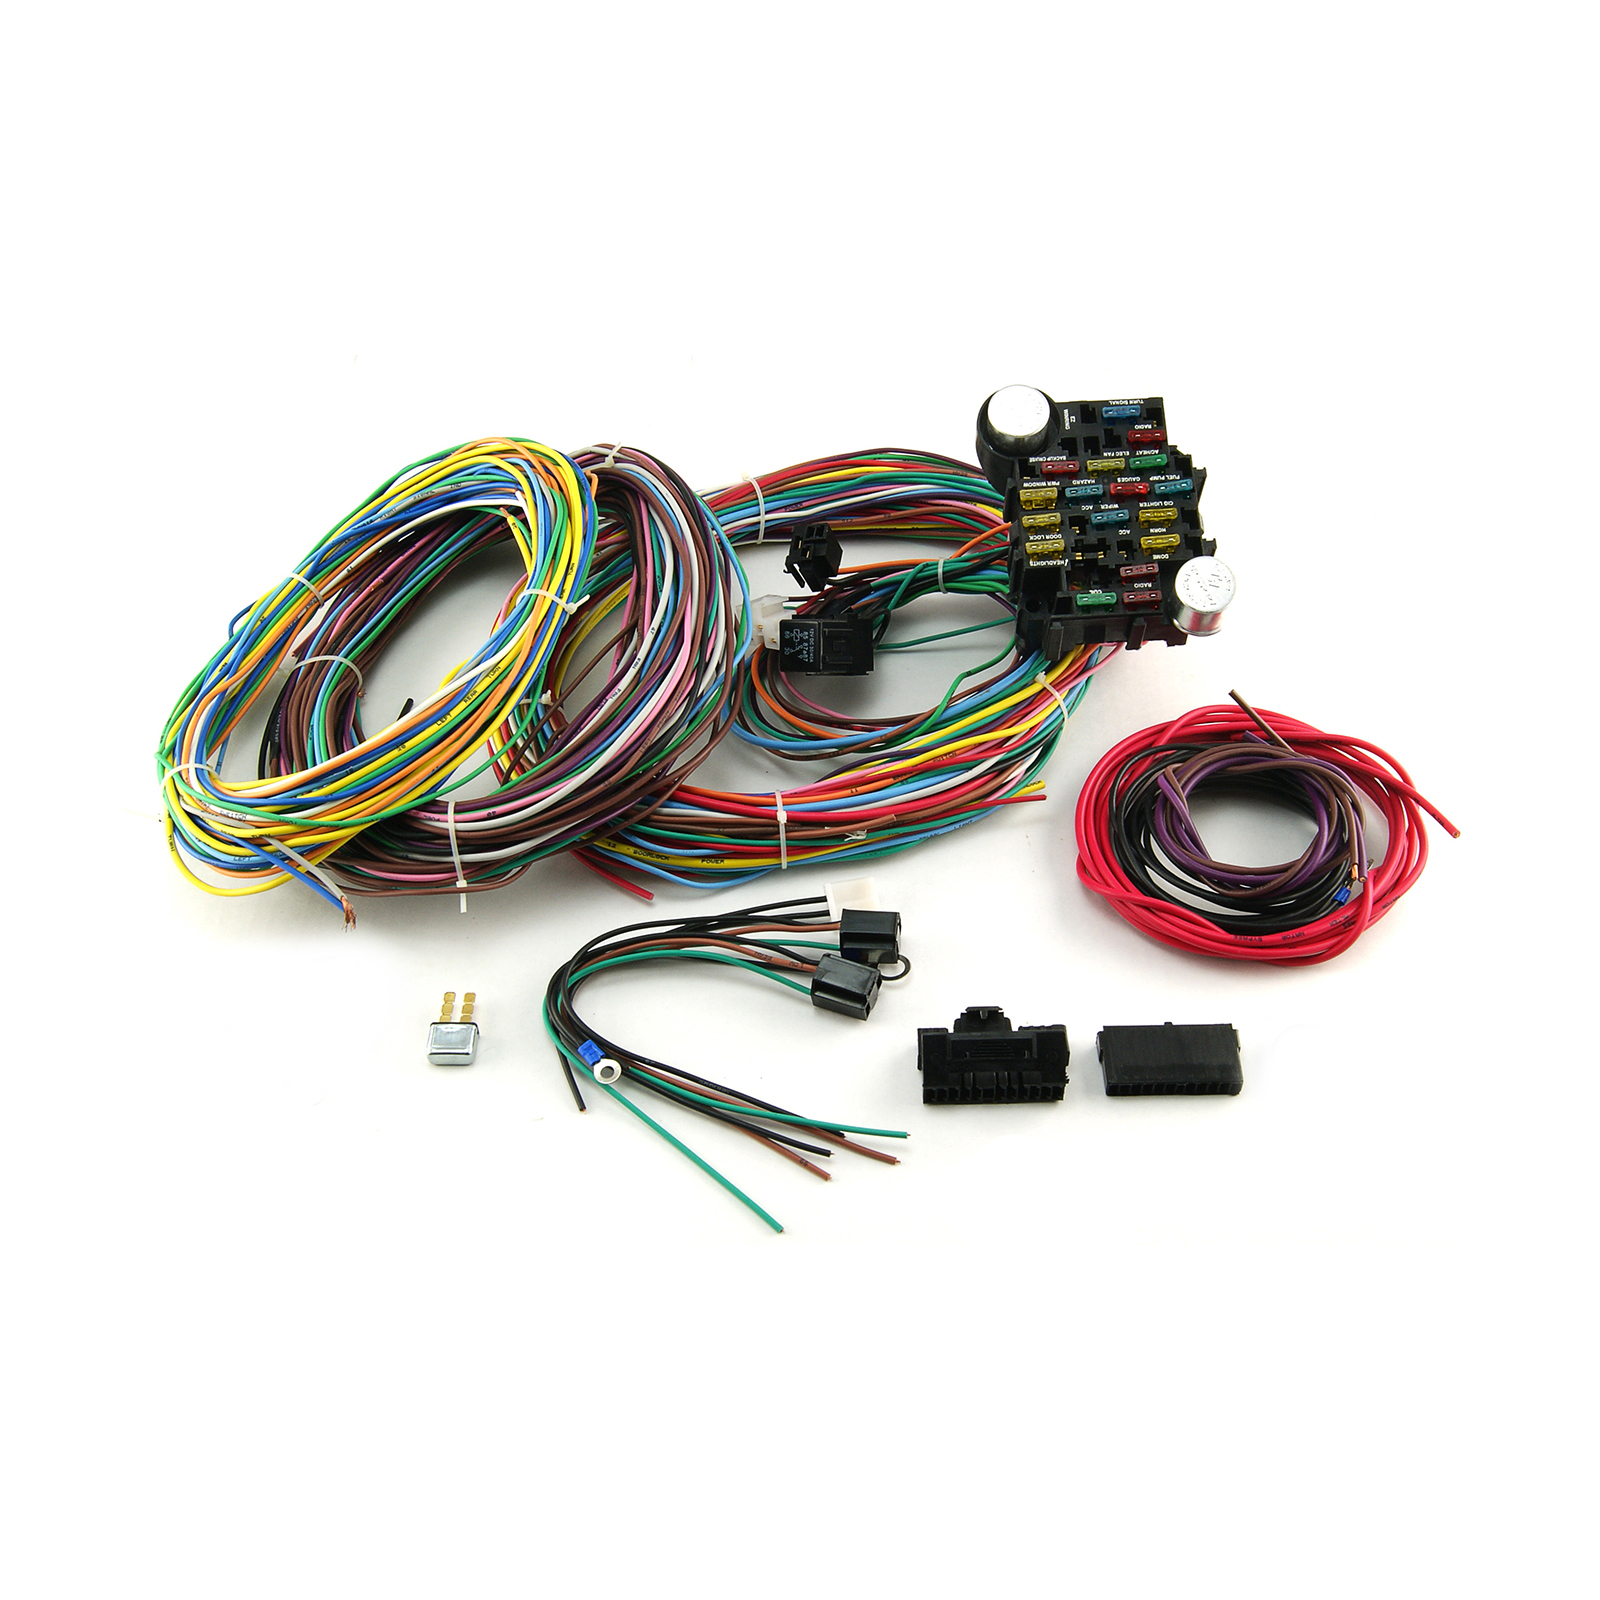 Universal Automobile Wiring Harness : Universal circuit wiring harness kit ebay